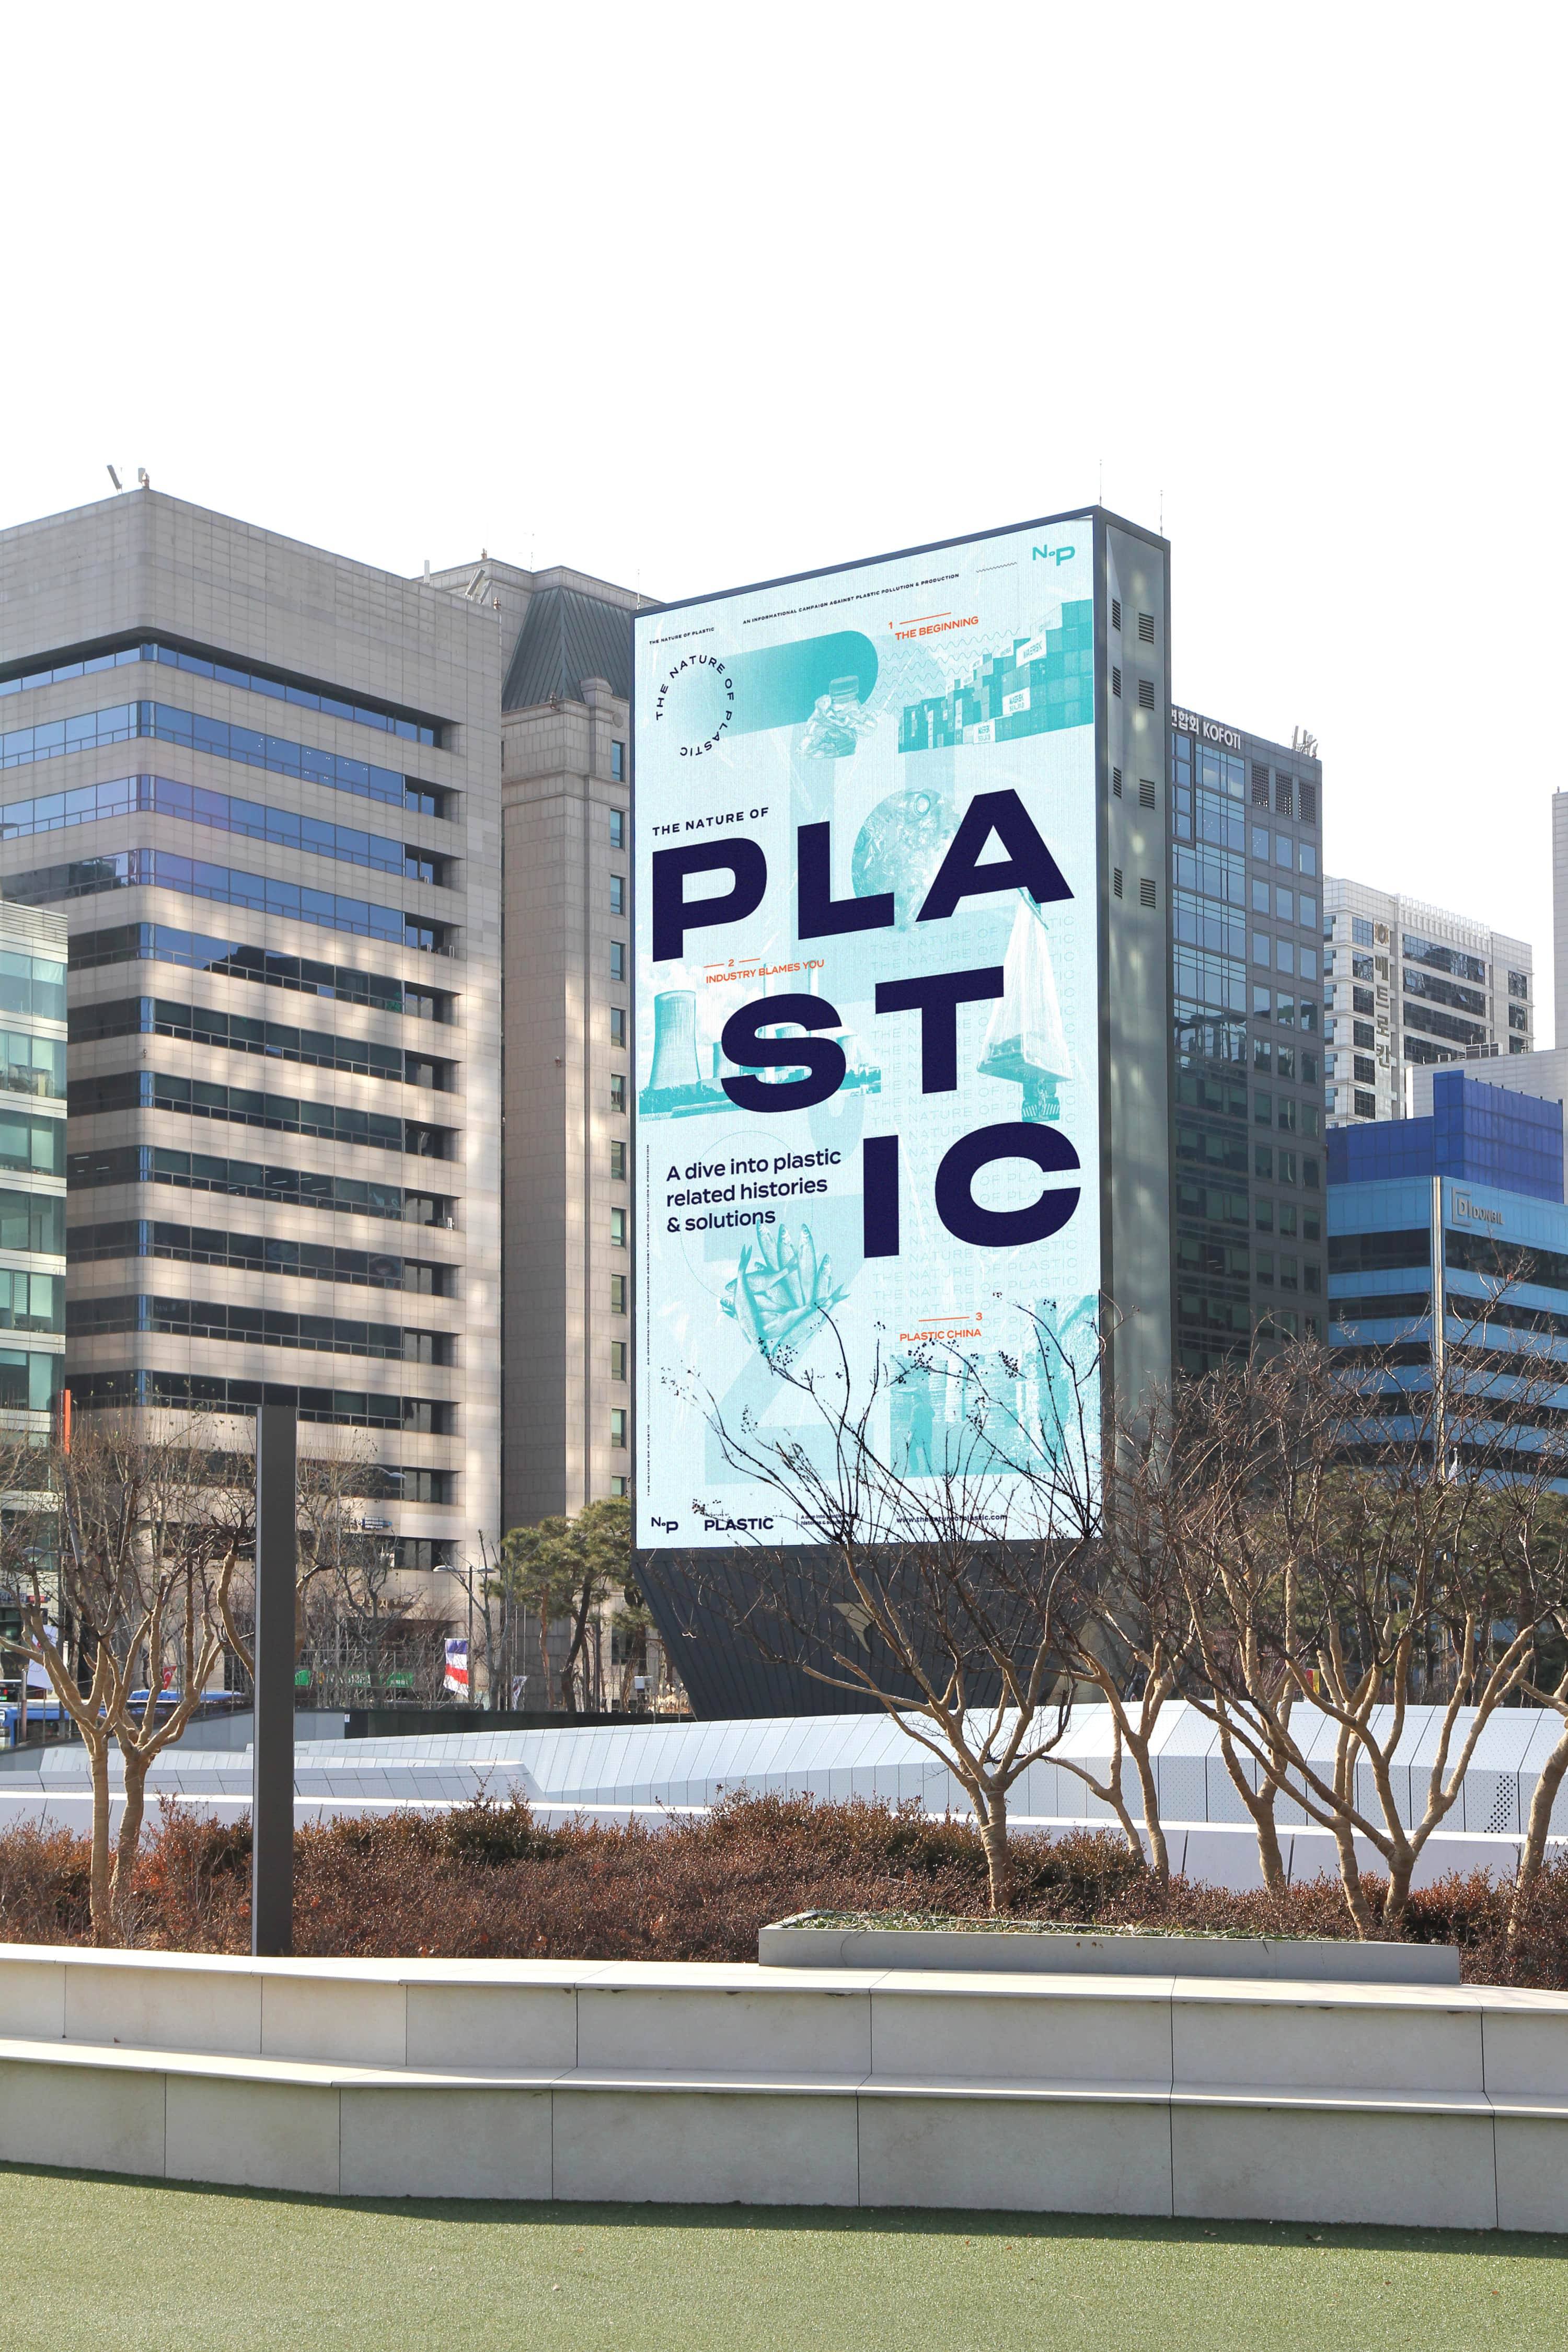 Outdoor billboard with campaign poster against a building